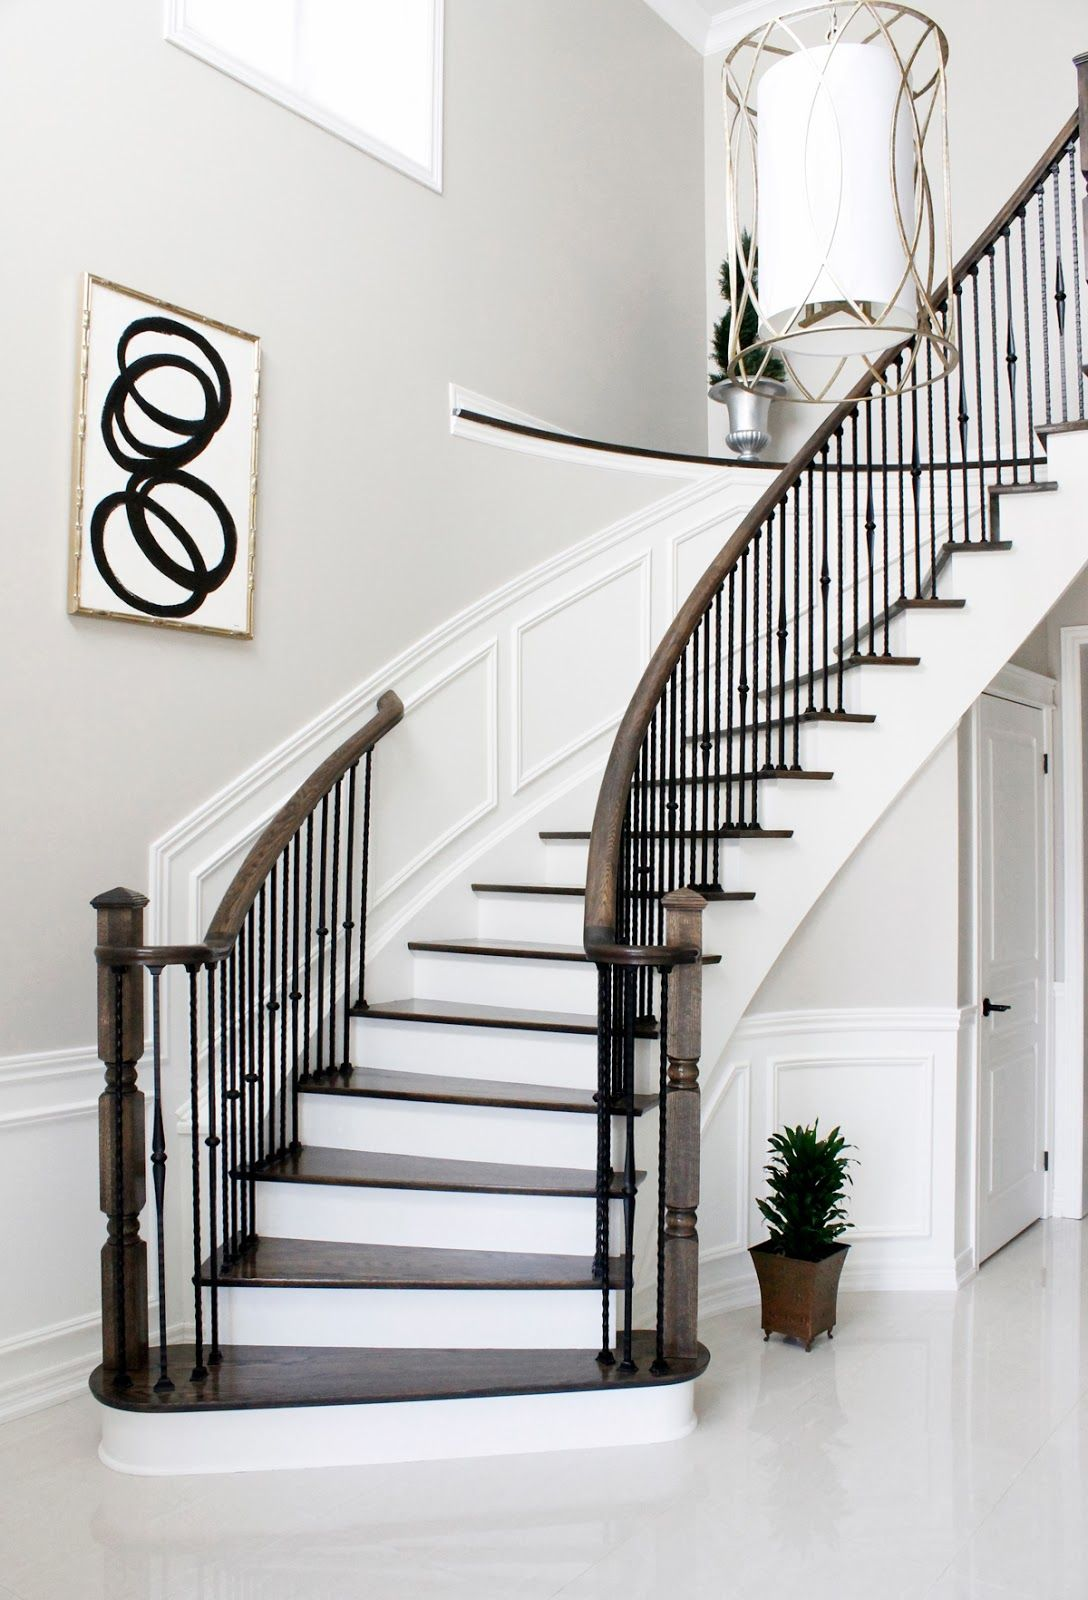 Best Painted Stairway Style Runner Flowing Into White Tile 400 x 300